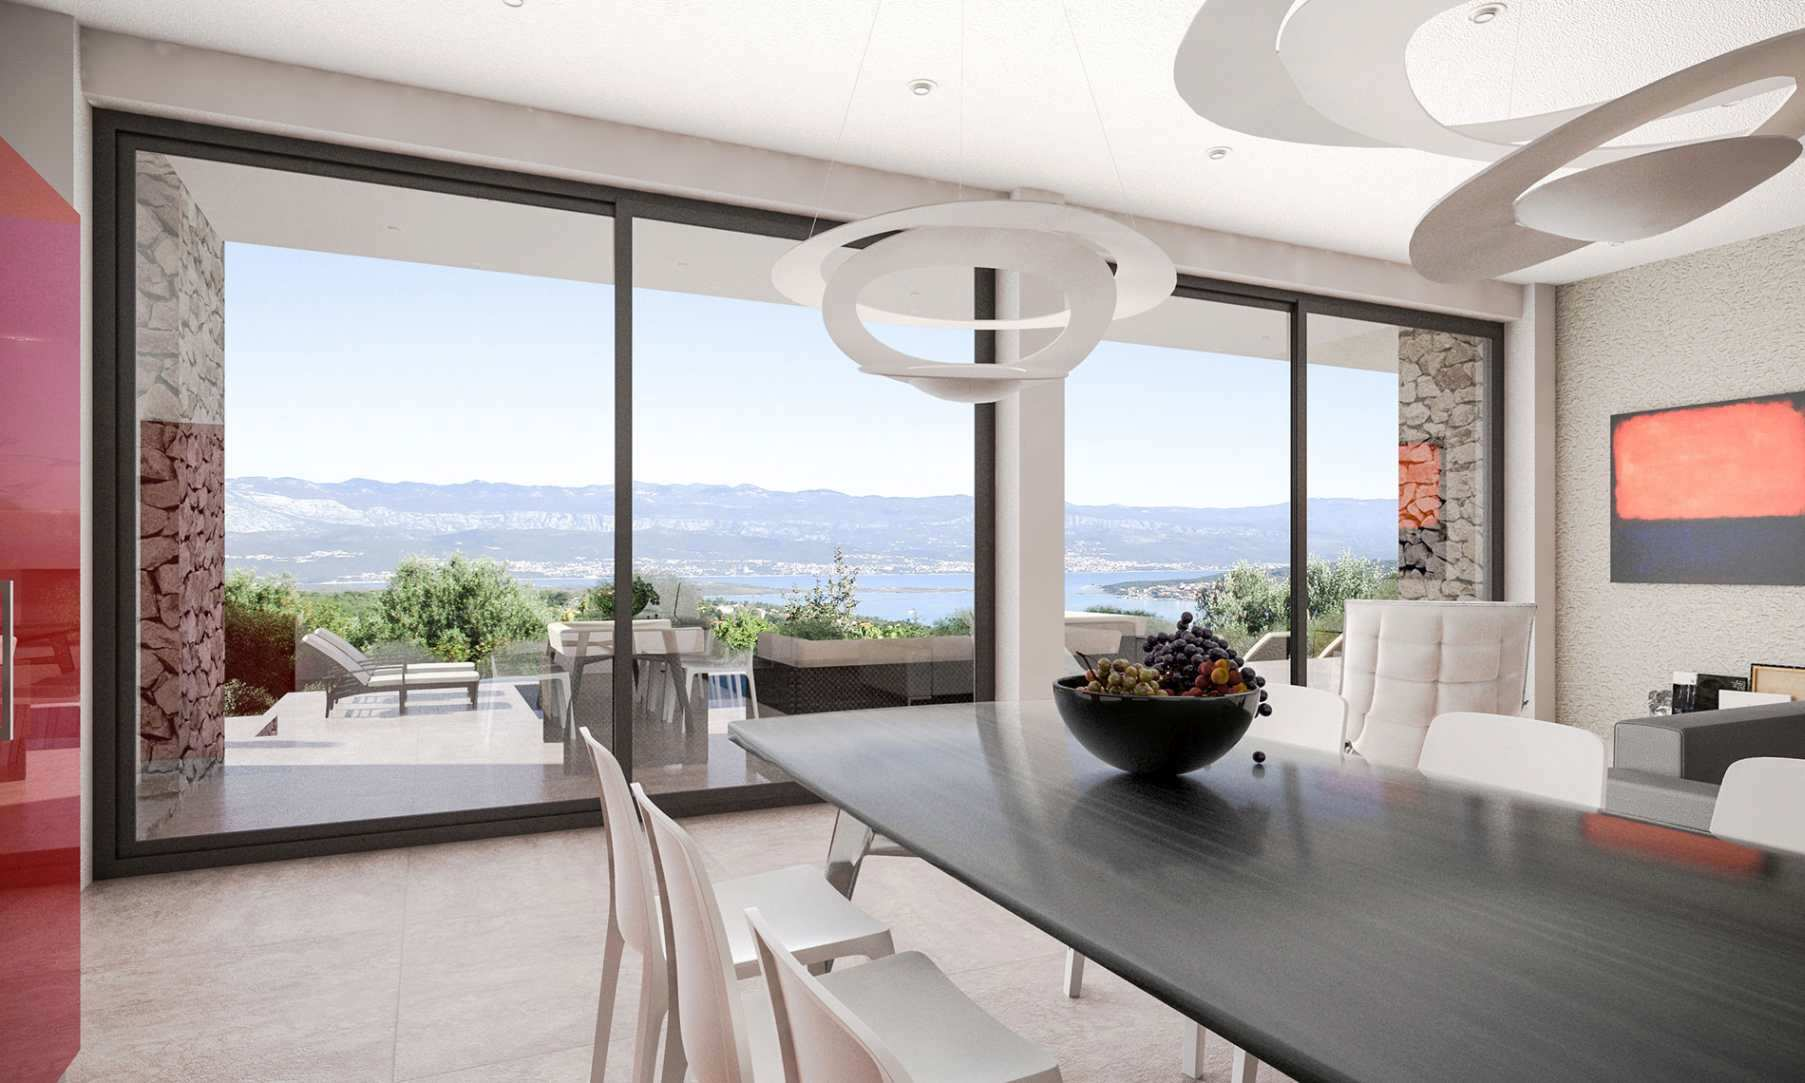 A view of the interior of the modern villa for sale in Croatia, island of Krk